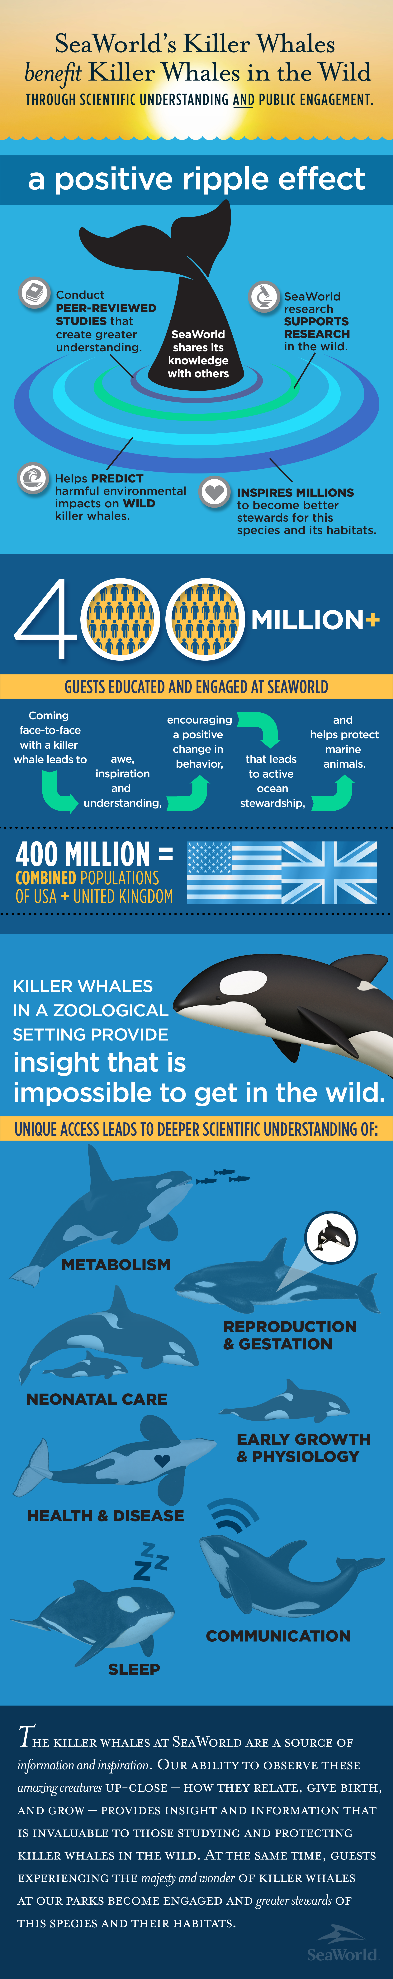 Infographic: SeaWorlds Killer Whales Benefit Killer Whales in the Wild